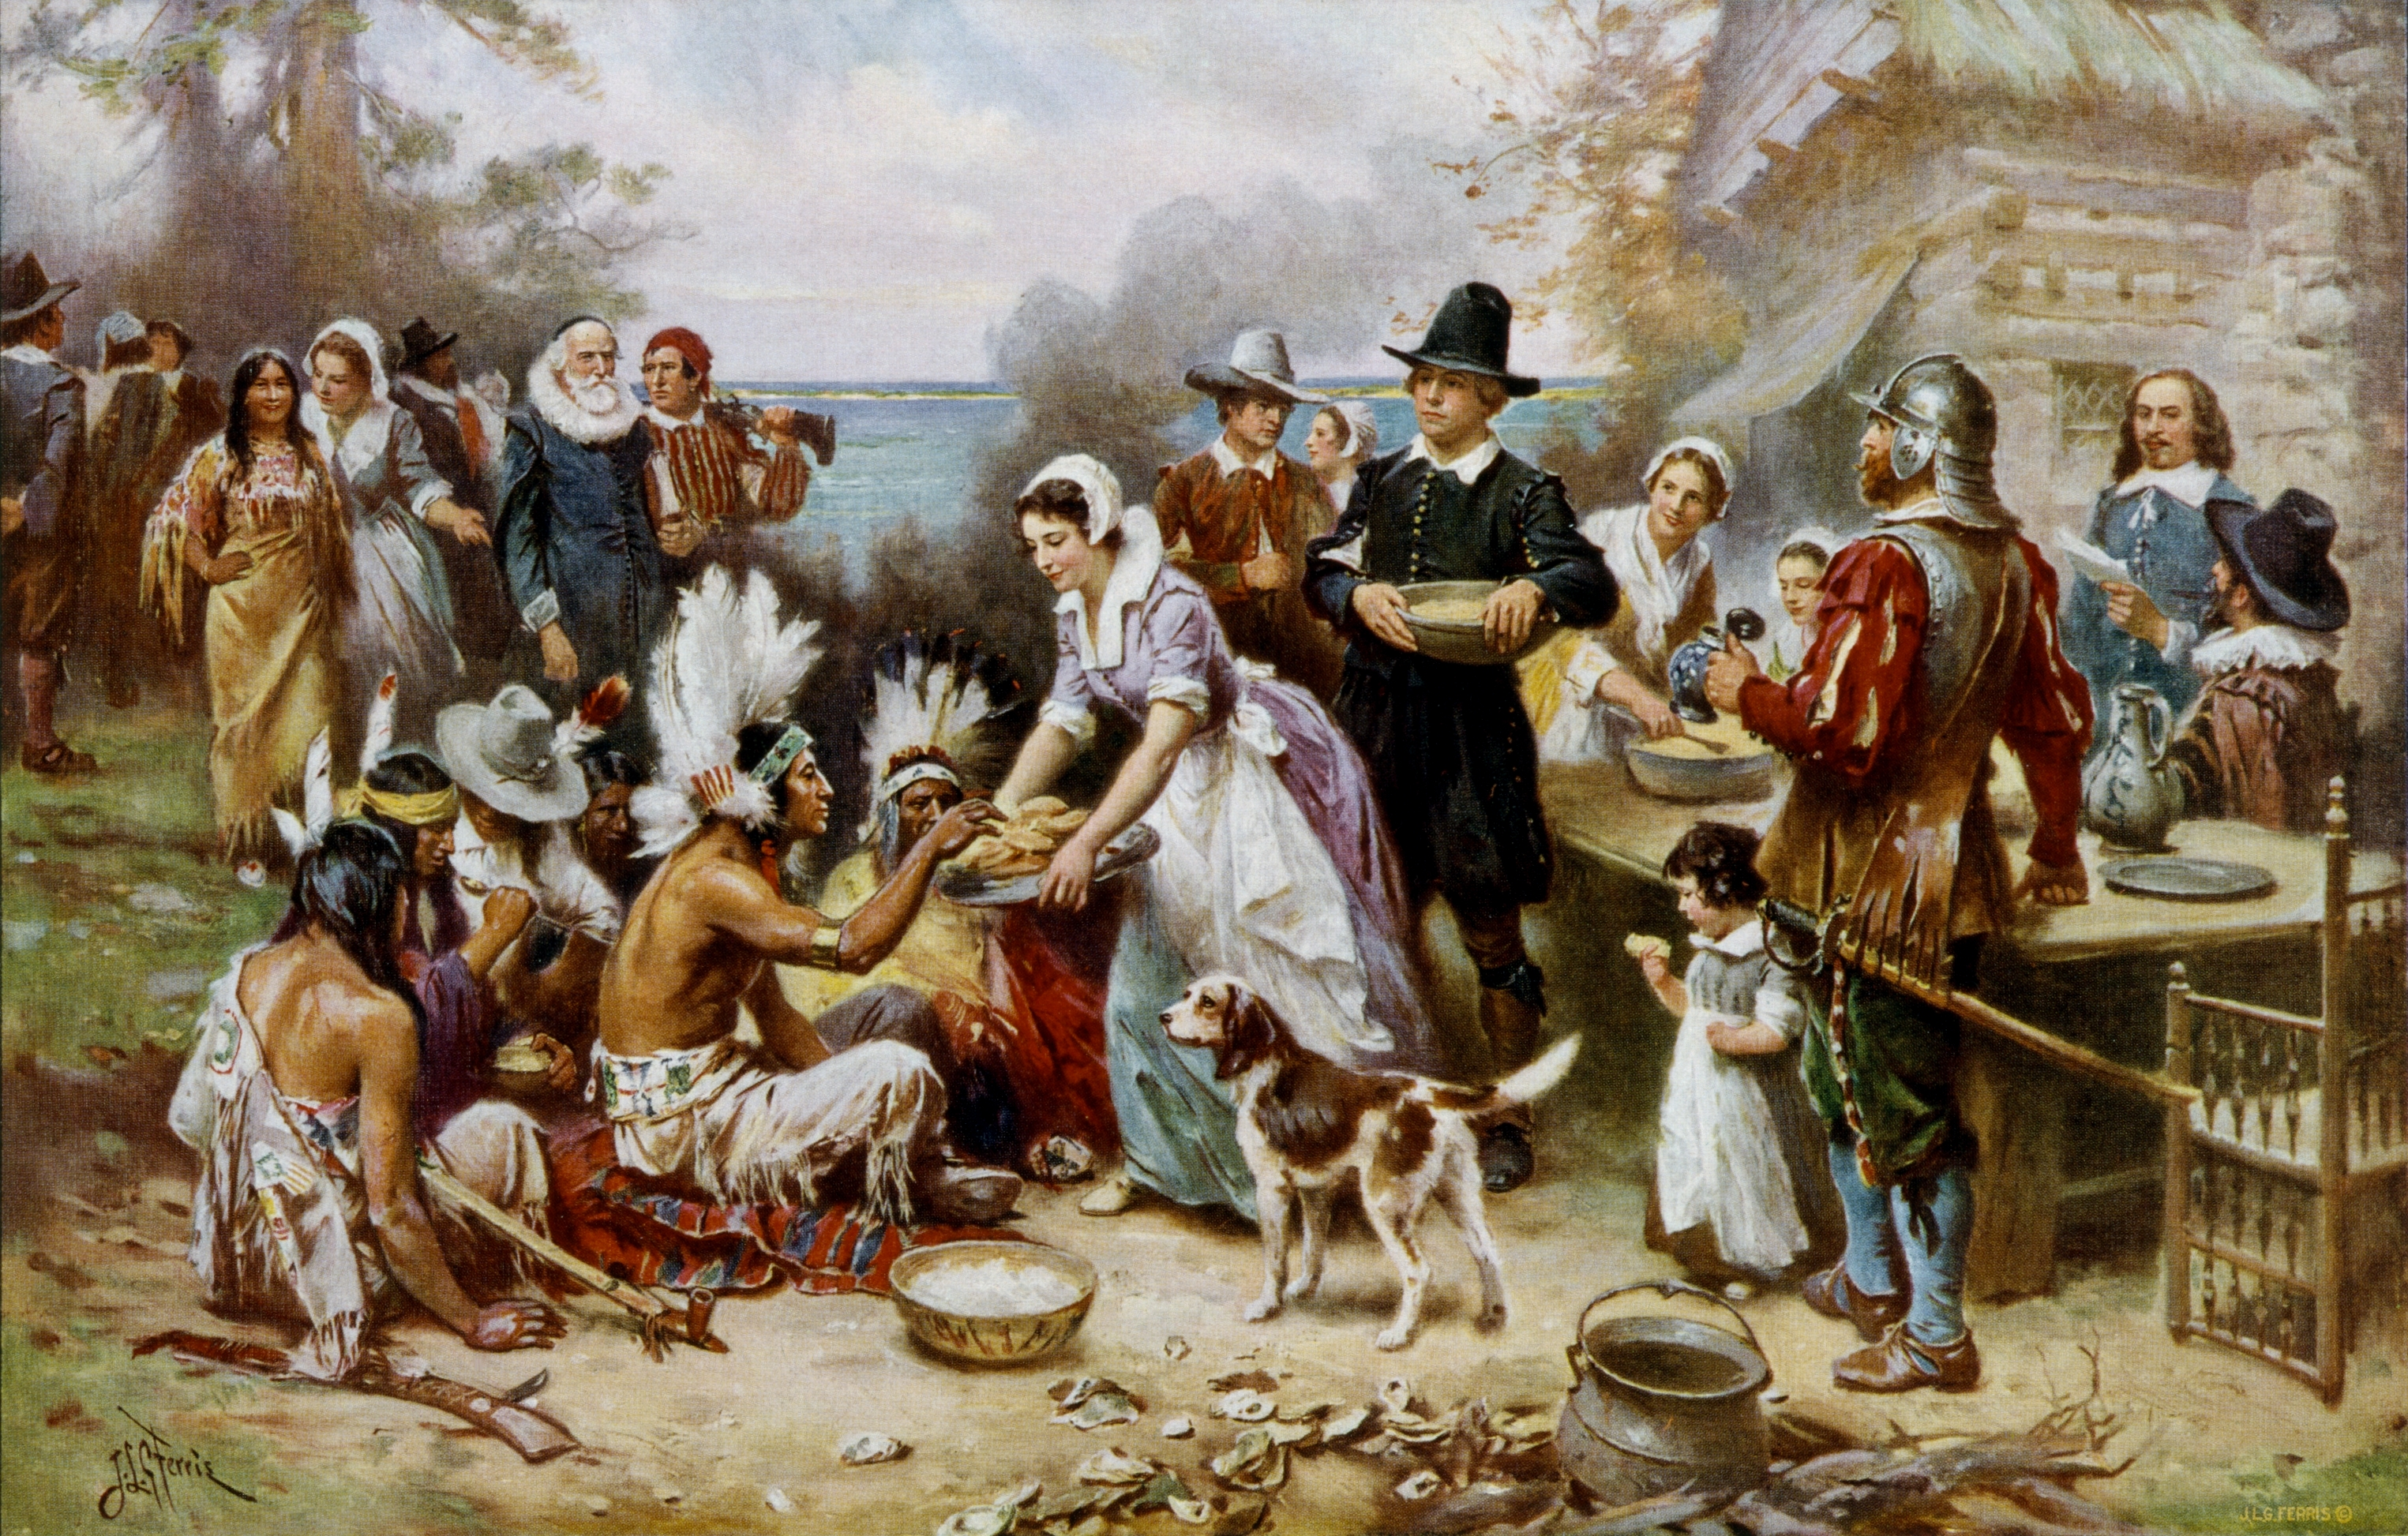 Jean Leon Gerome Ferris's The First Thanksgiving 1621.